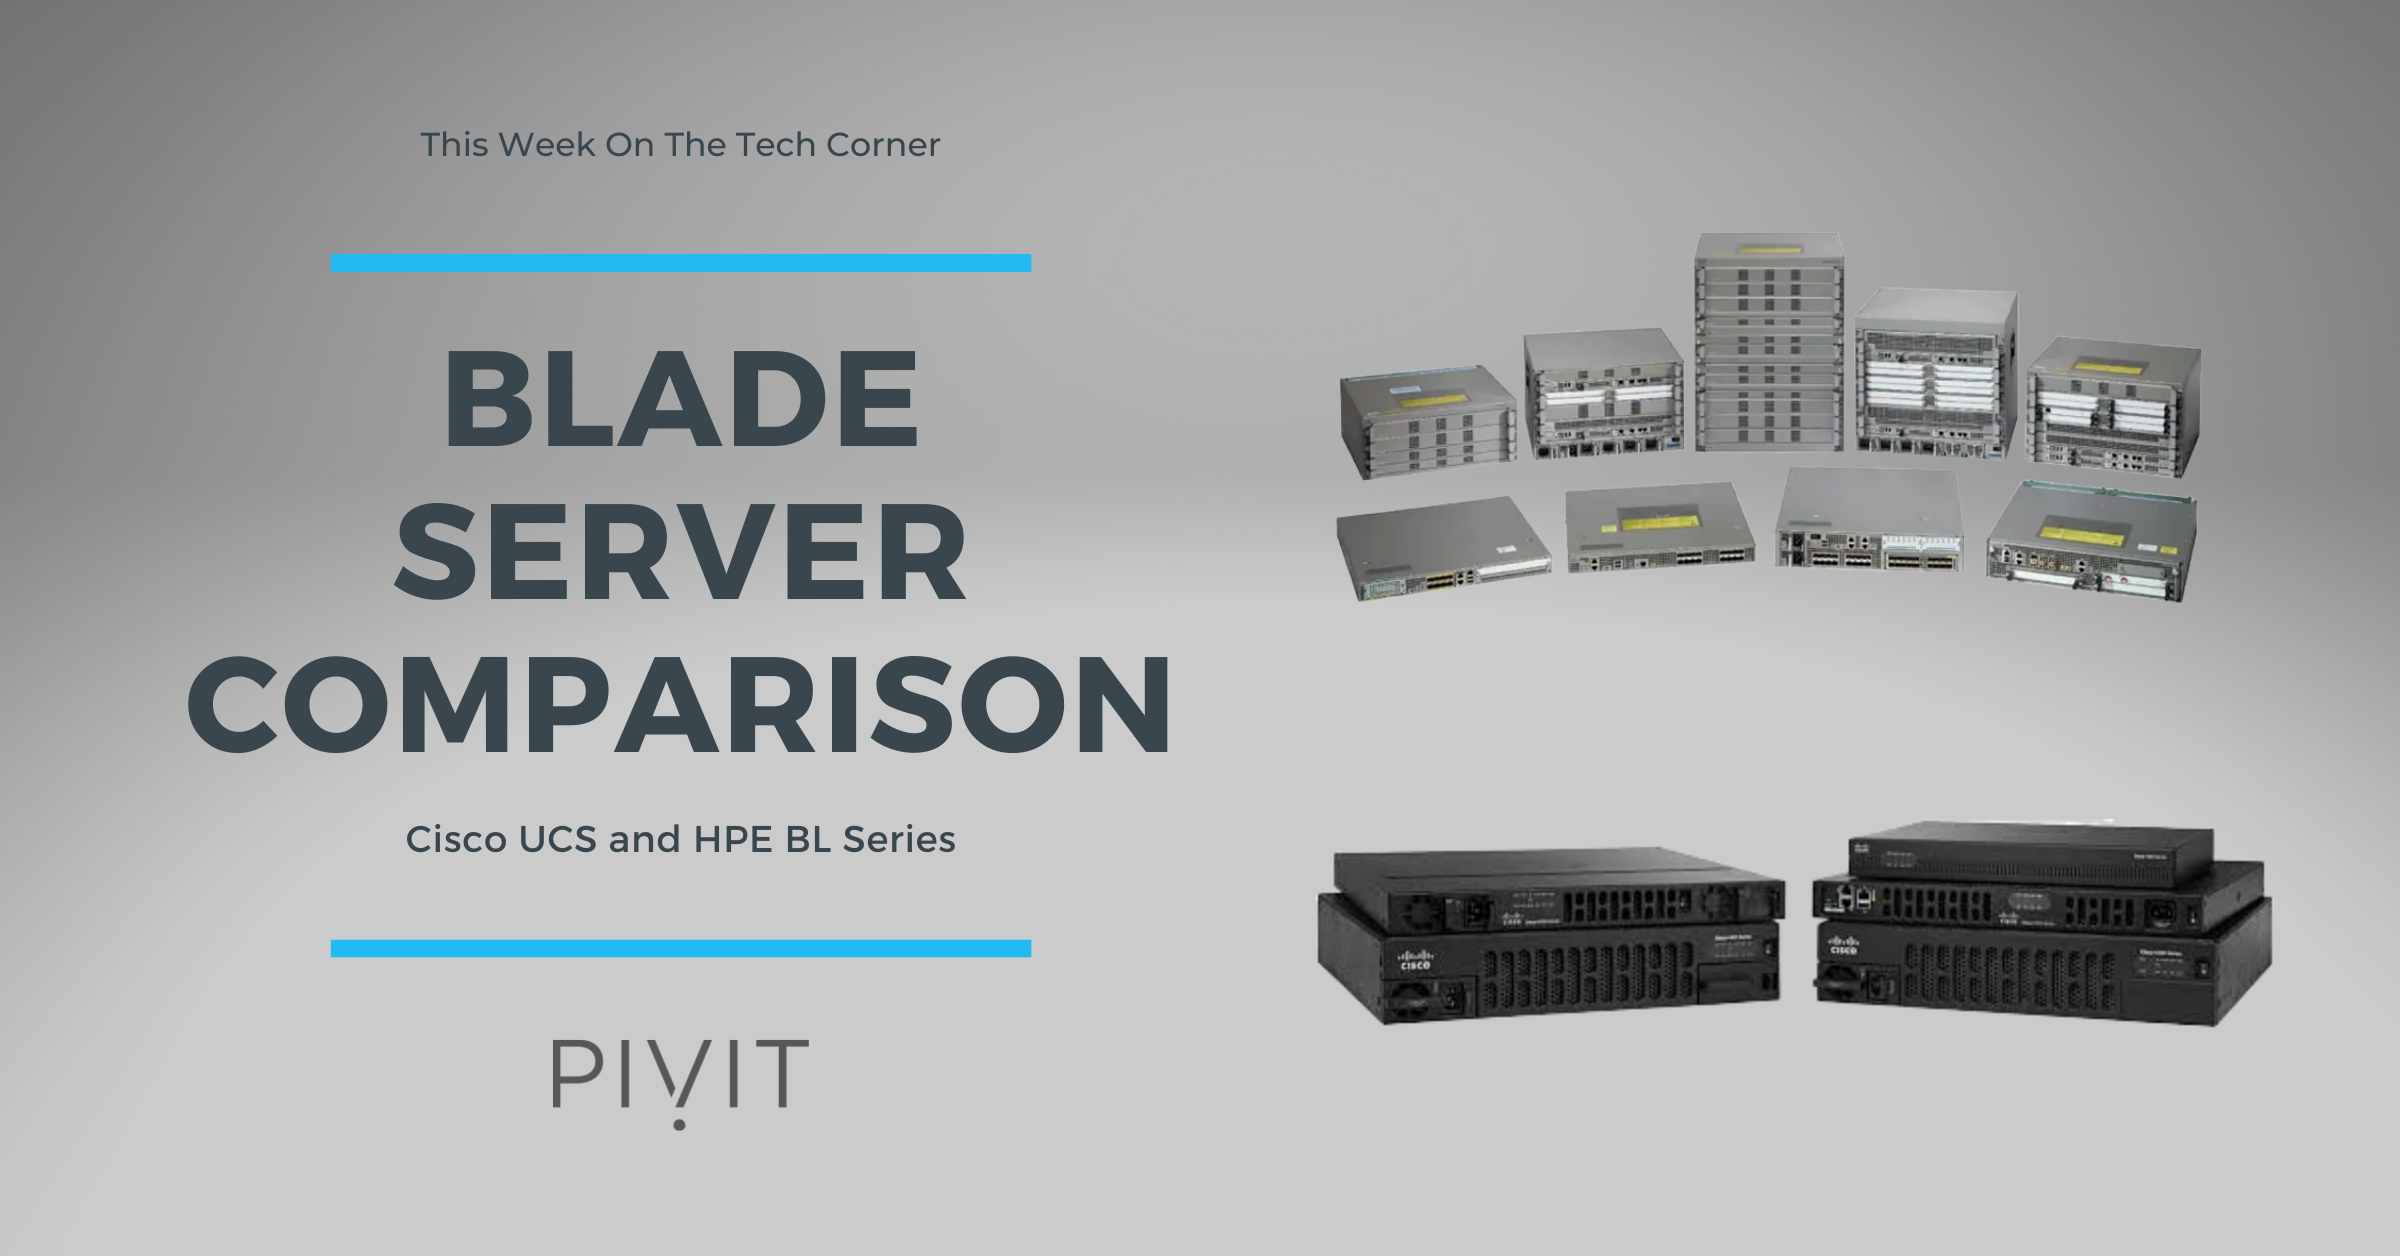 Blade Server Comparisons - Cisco UCS and HPE BL Series Models